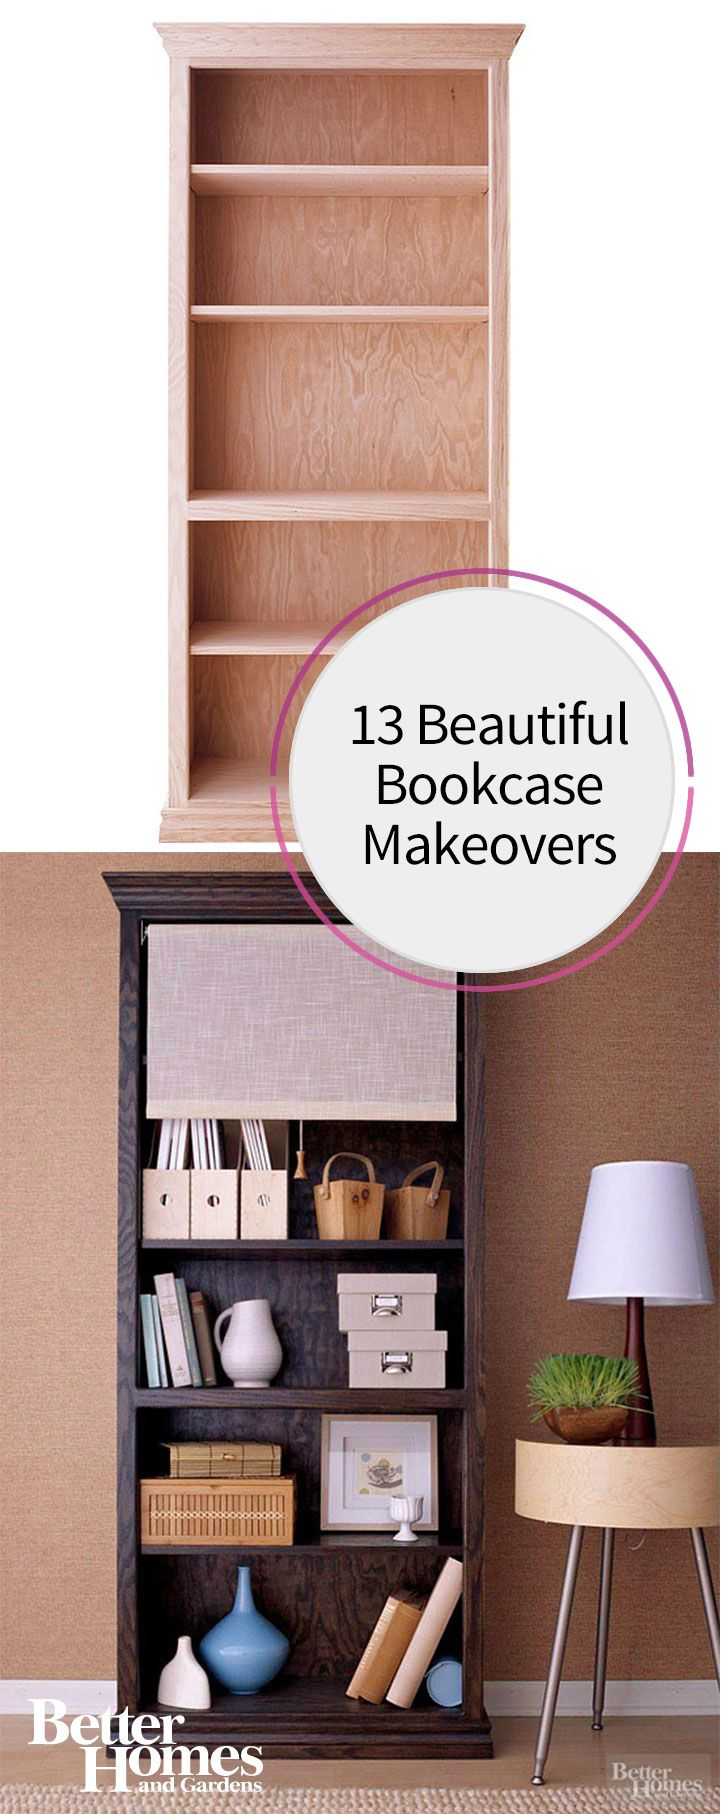 188 best builtins u0026 bookshelves images on pinterest home and home decor